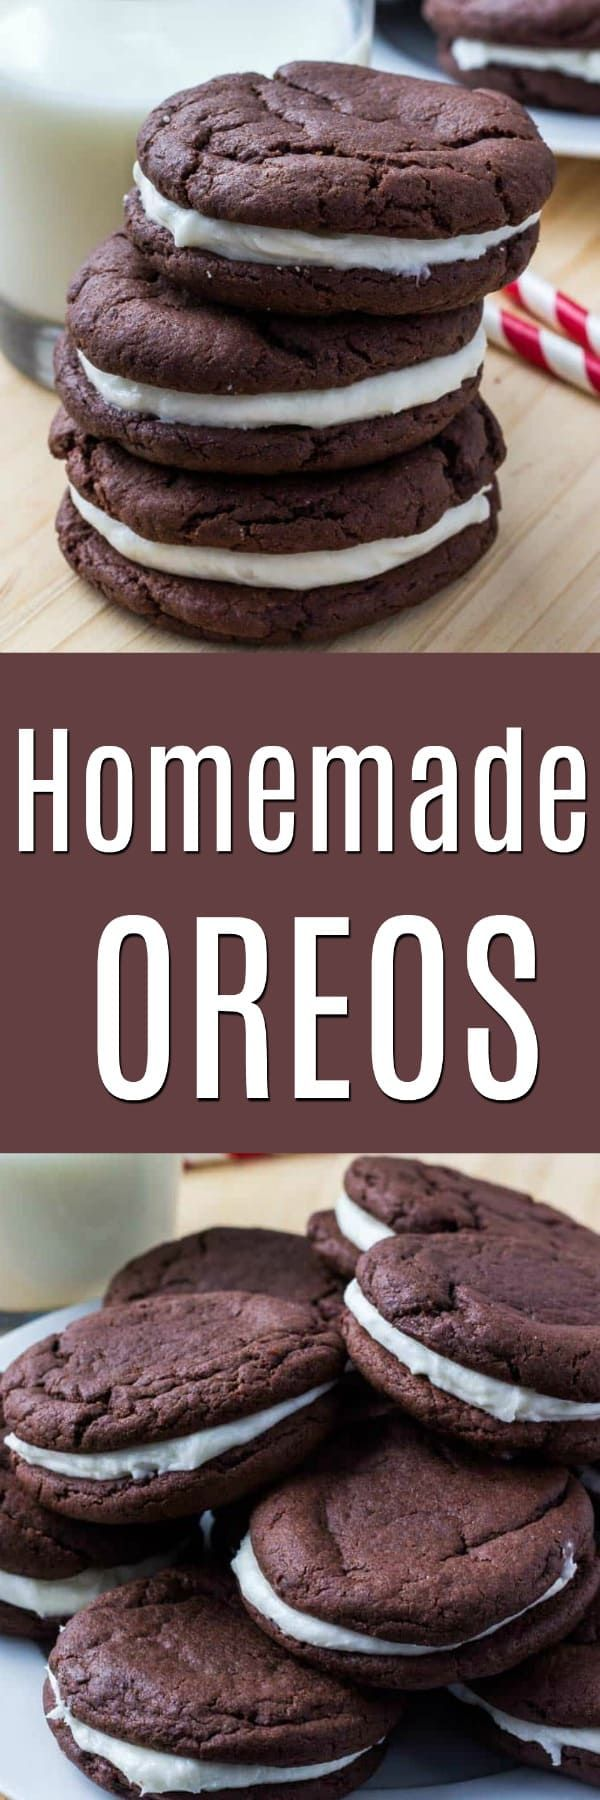 homemade Oreos. They're soft and chewy with cream cheese frosting, insanely delicious, and super easy to make because we're using cake mix.